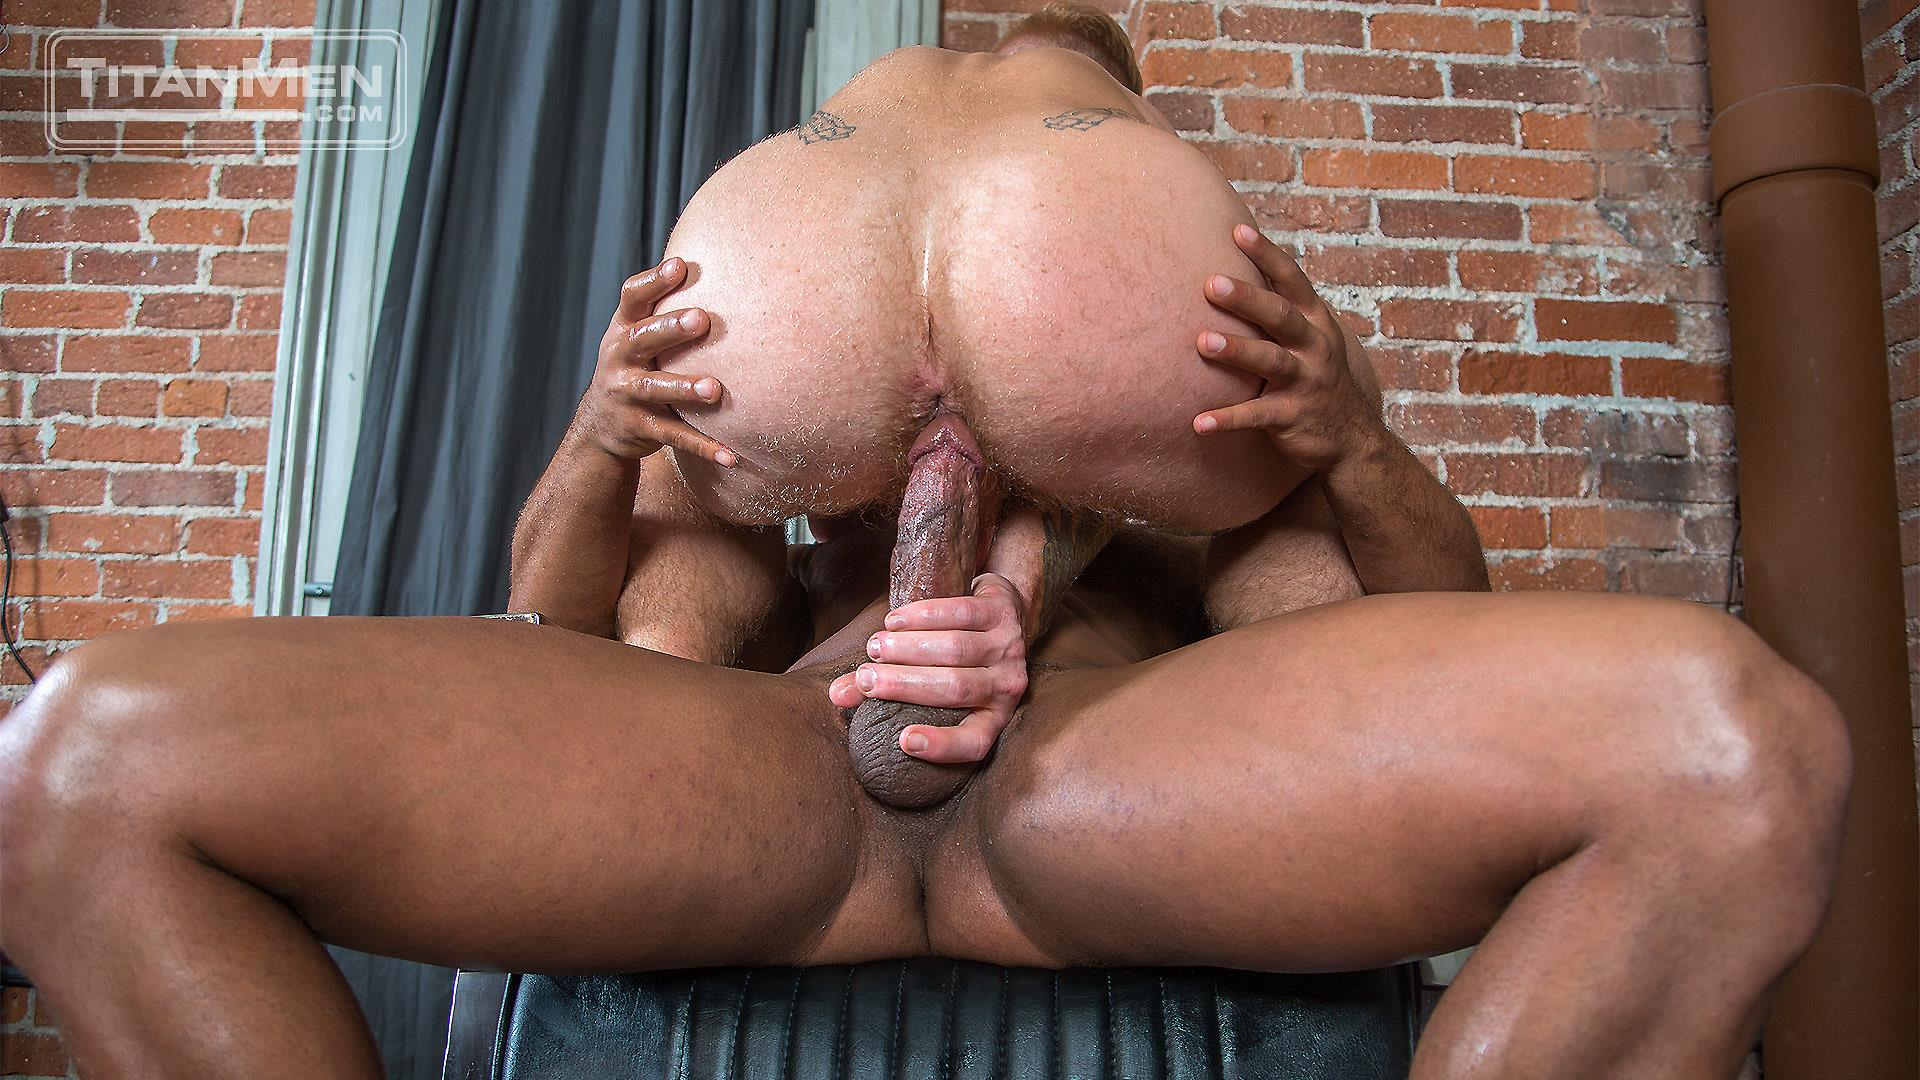 TitanMen Micah Brandt and Bennett Anthony Interracial Muscle Hunks Flip Fucking Amateur Gay Porn 16 Micah Brandt and Bennett Anthony Flip Fucking With Their Big Dicks